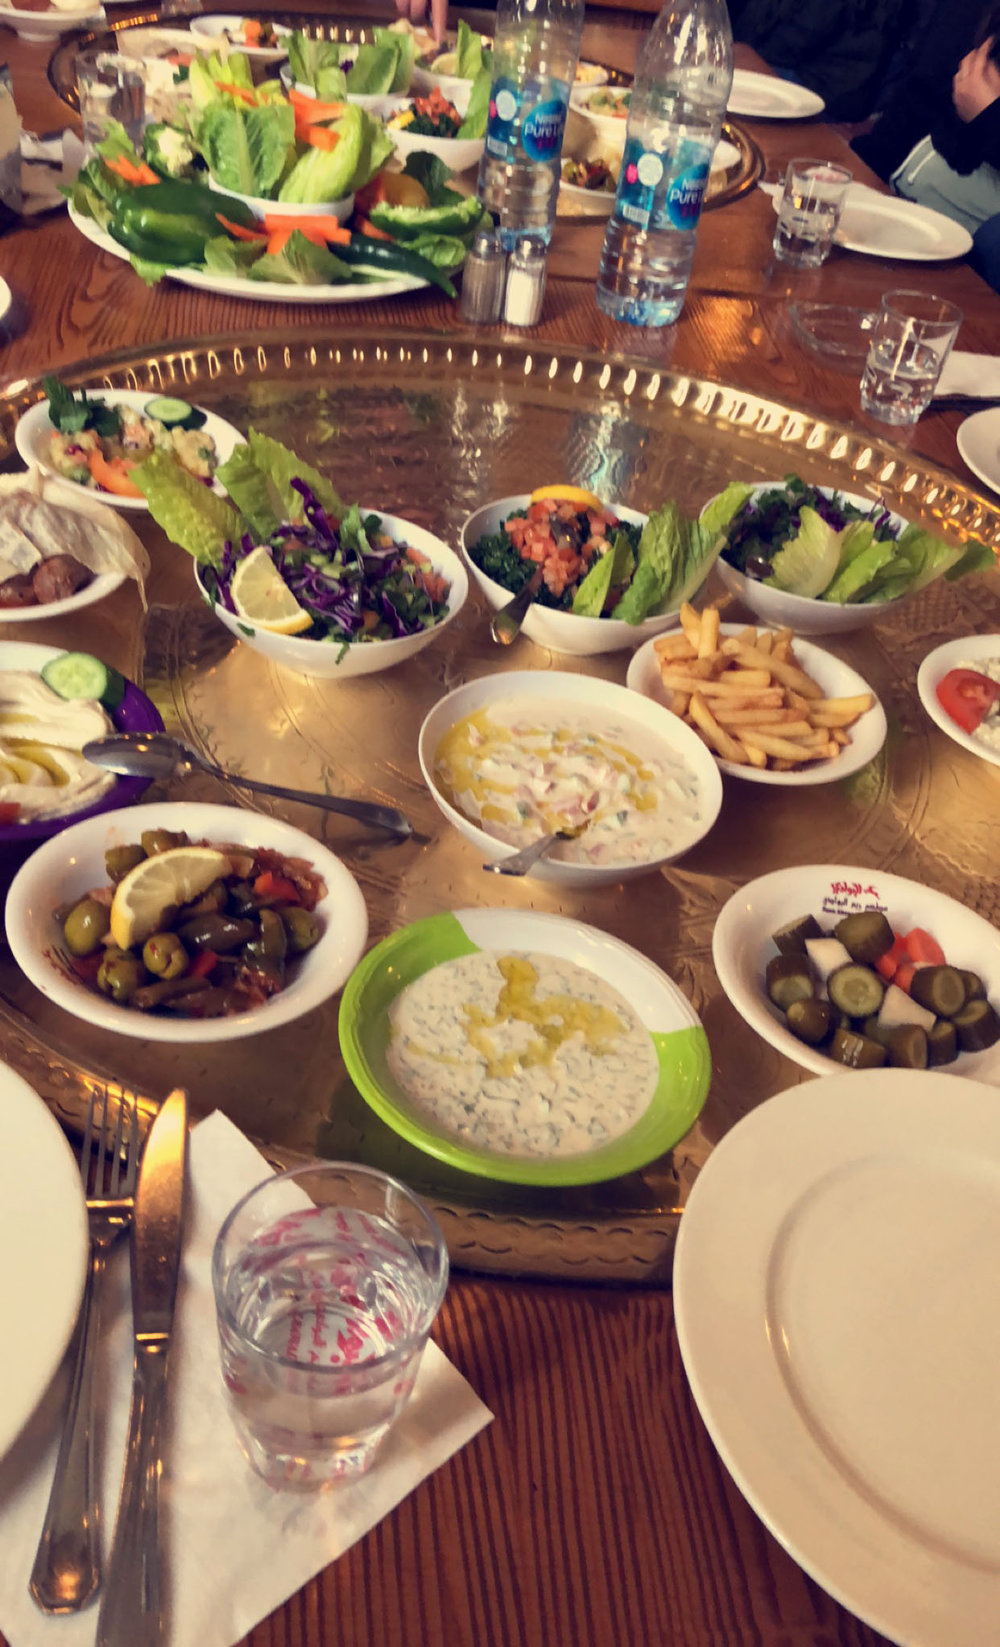 This was a traditional Jordanian Lunch at Reem Al-Bawadi Restaurant. We went with all of the students, professors and faculty at AMIDEAST Amman. There were three courses. Pictured here is the appetizer with tabouleh, hummus, fries, grape leaves, and vegetables. Photo credit: Arguin, 2019